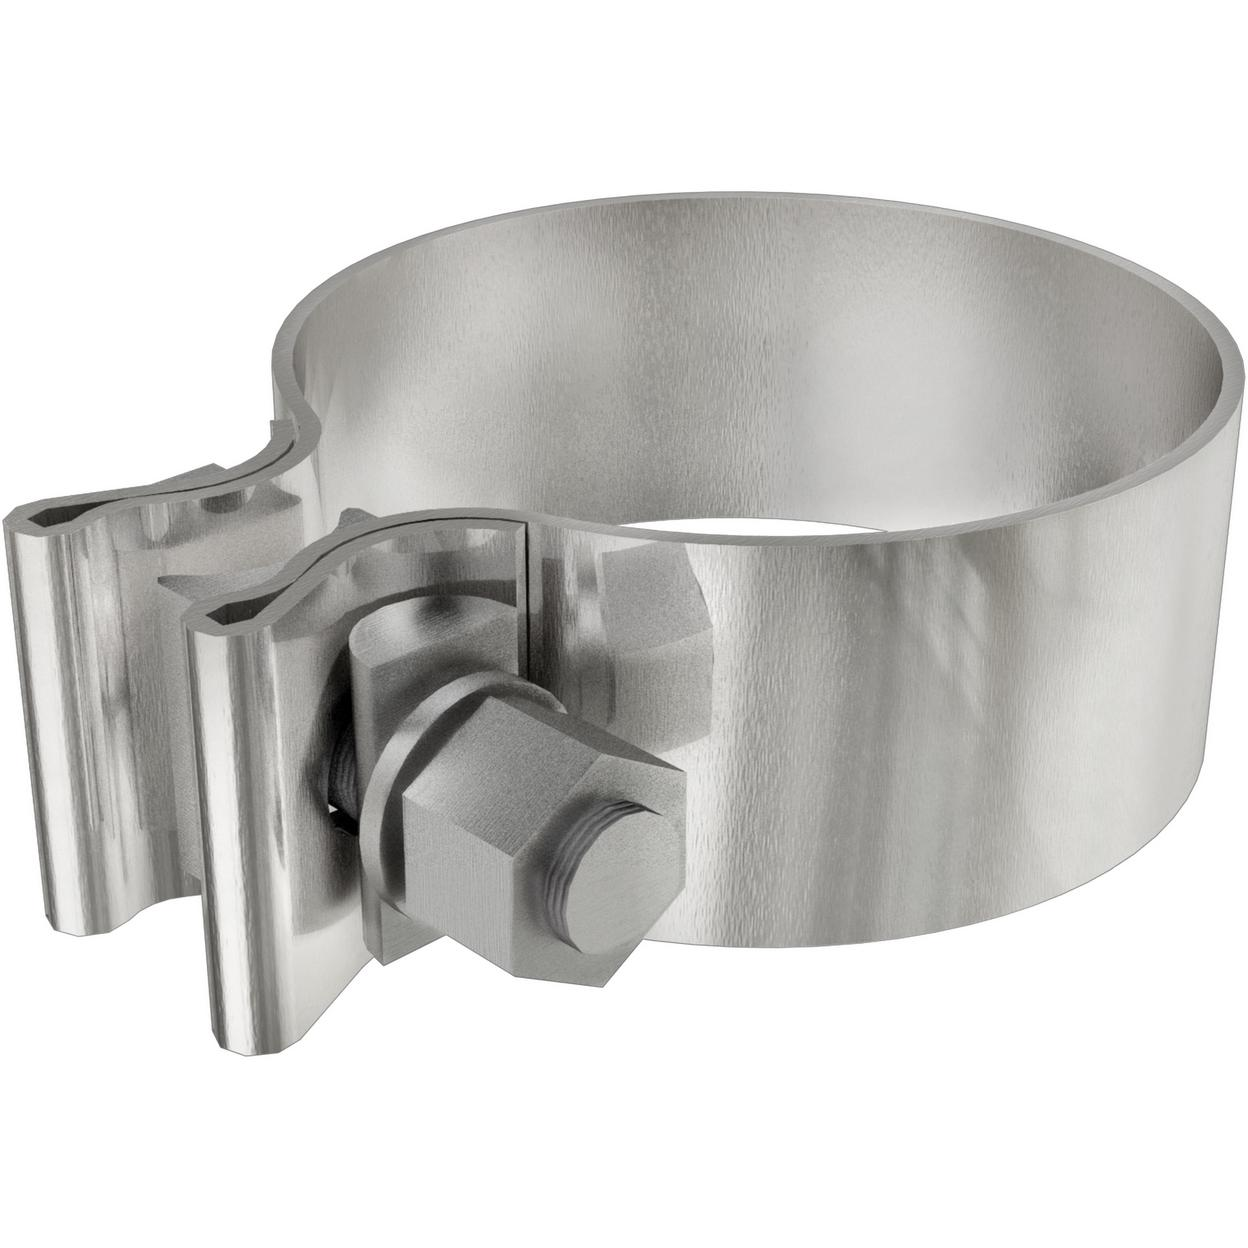 Lap Joint Band Clamp - 5.00in.